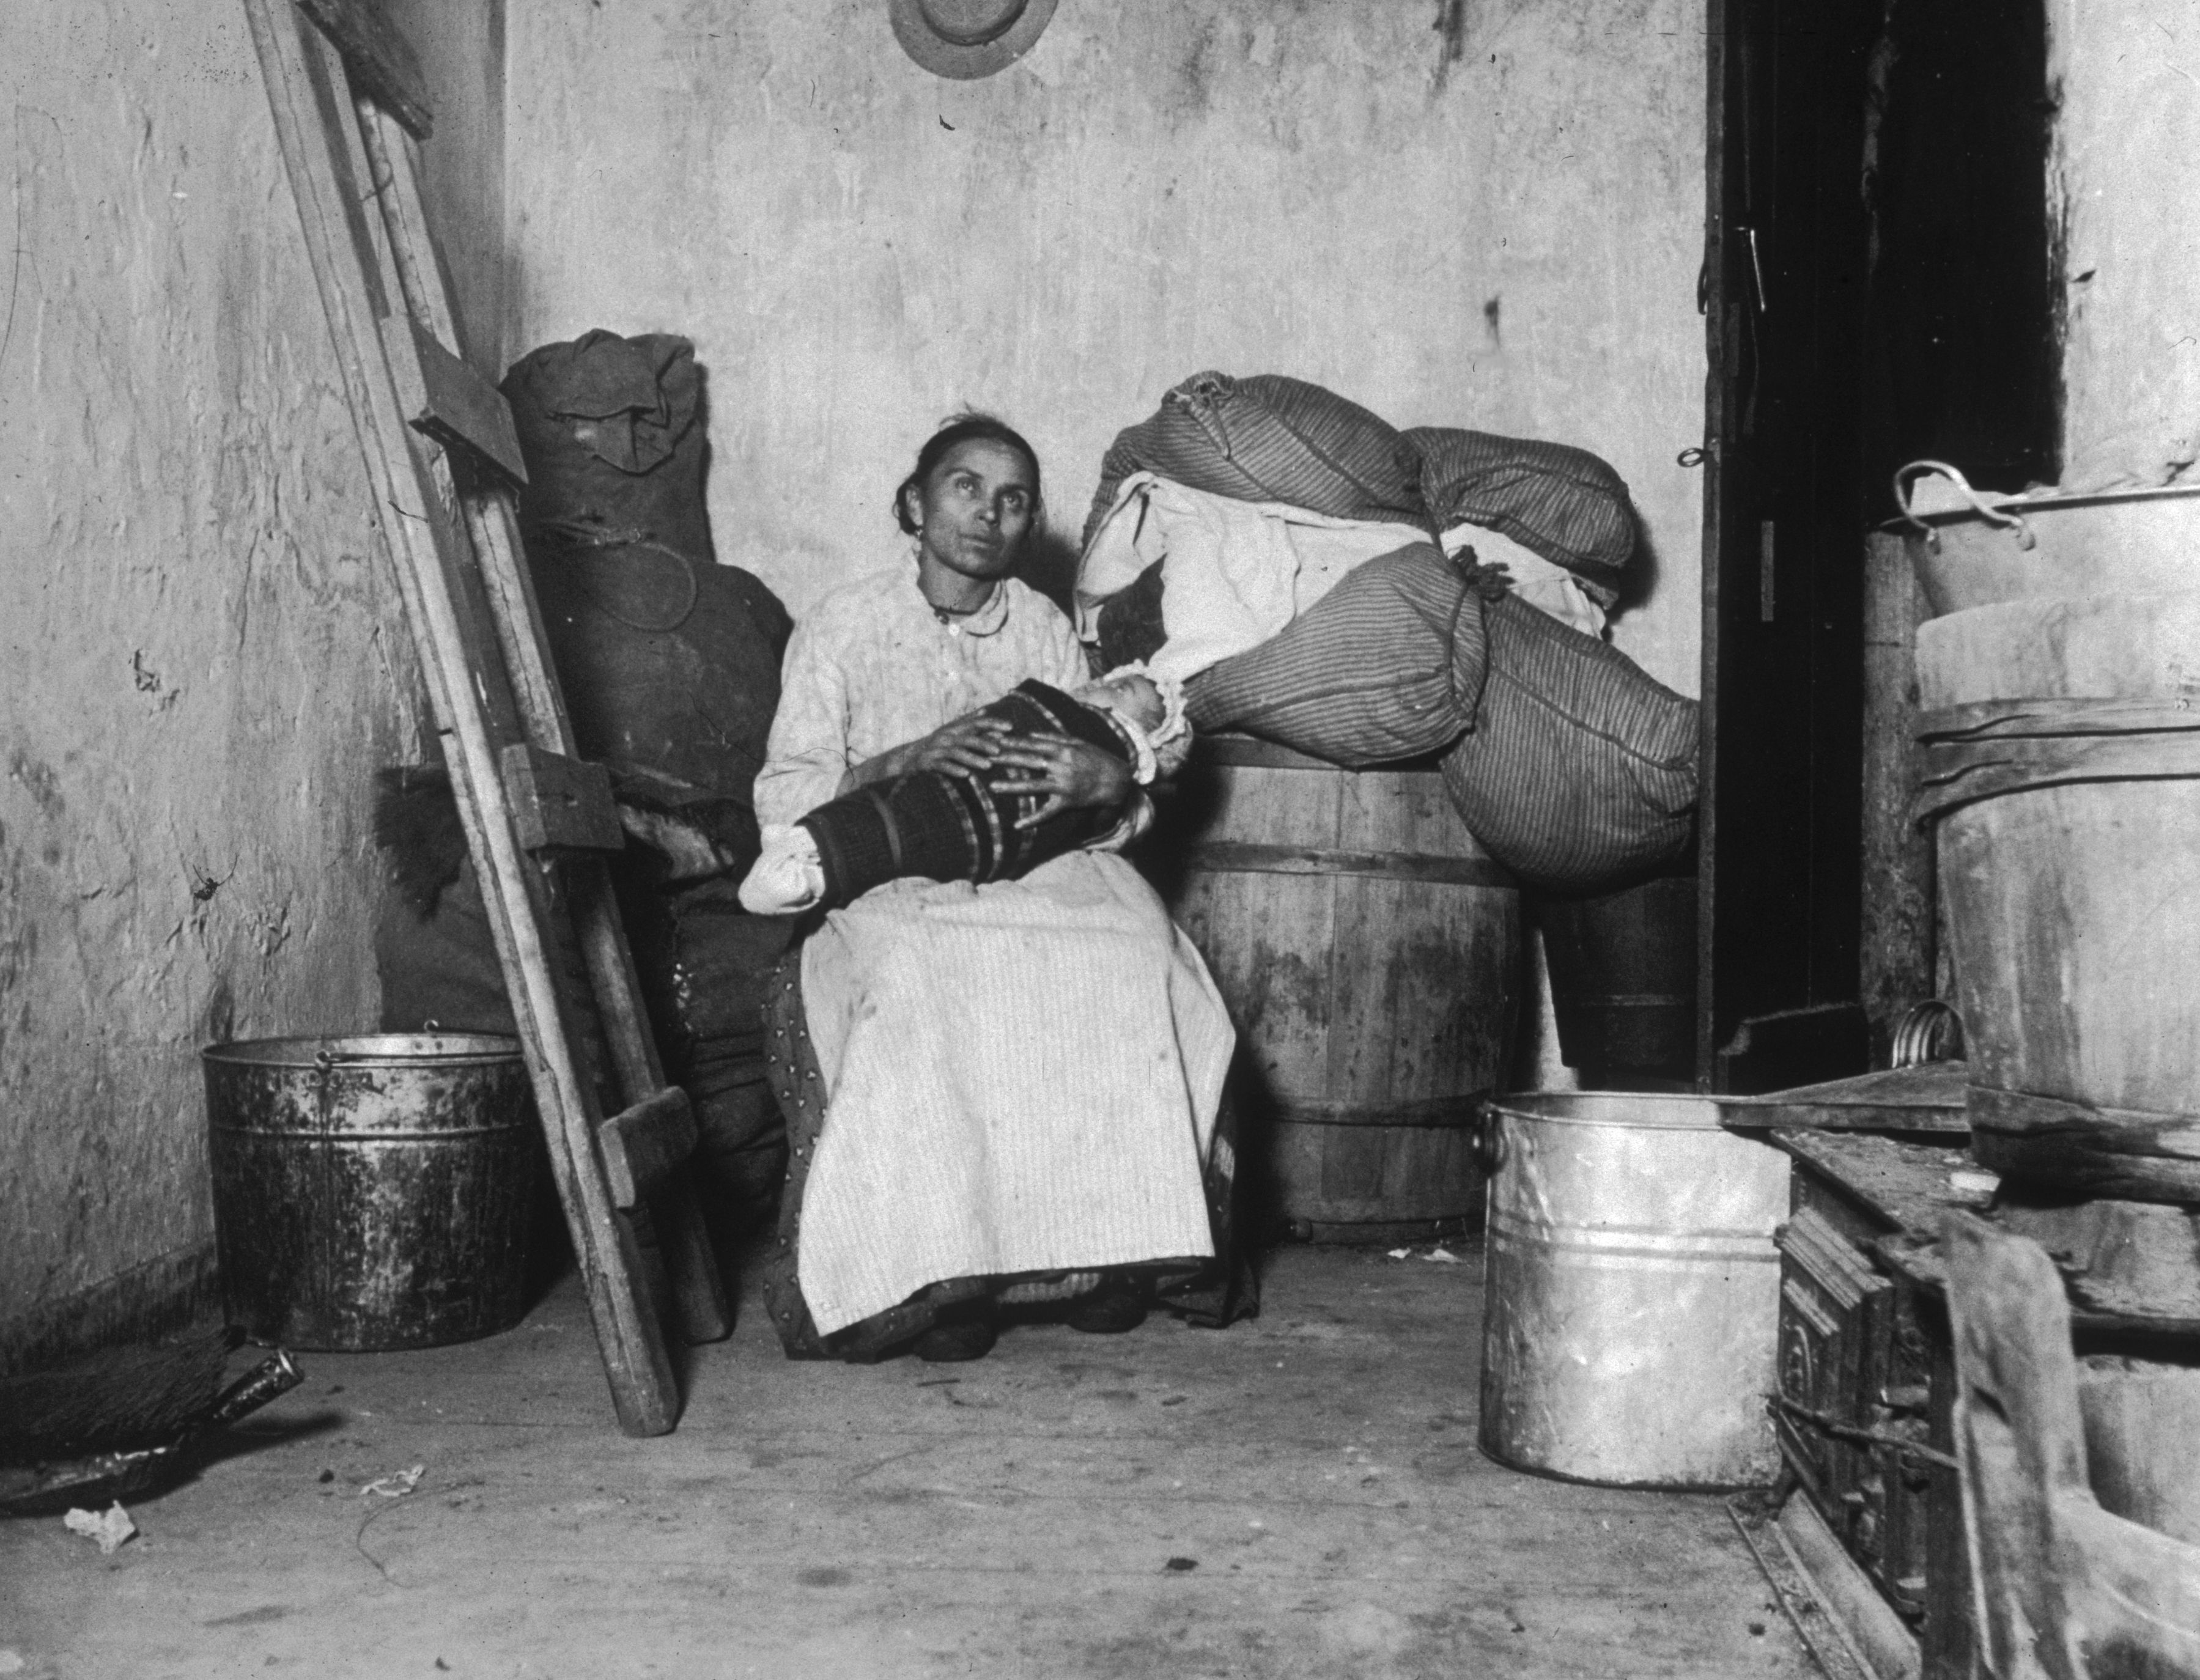 Photo by Jacob Riis of a woman holding a baby